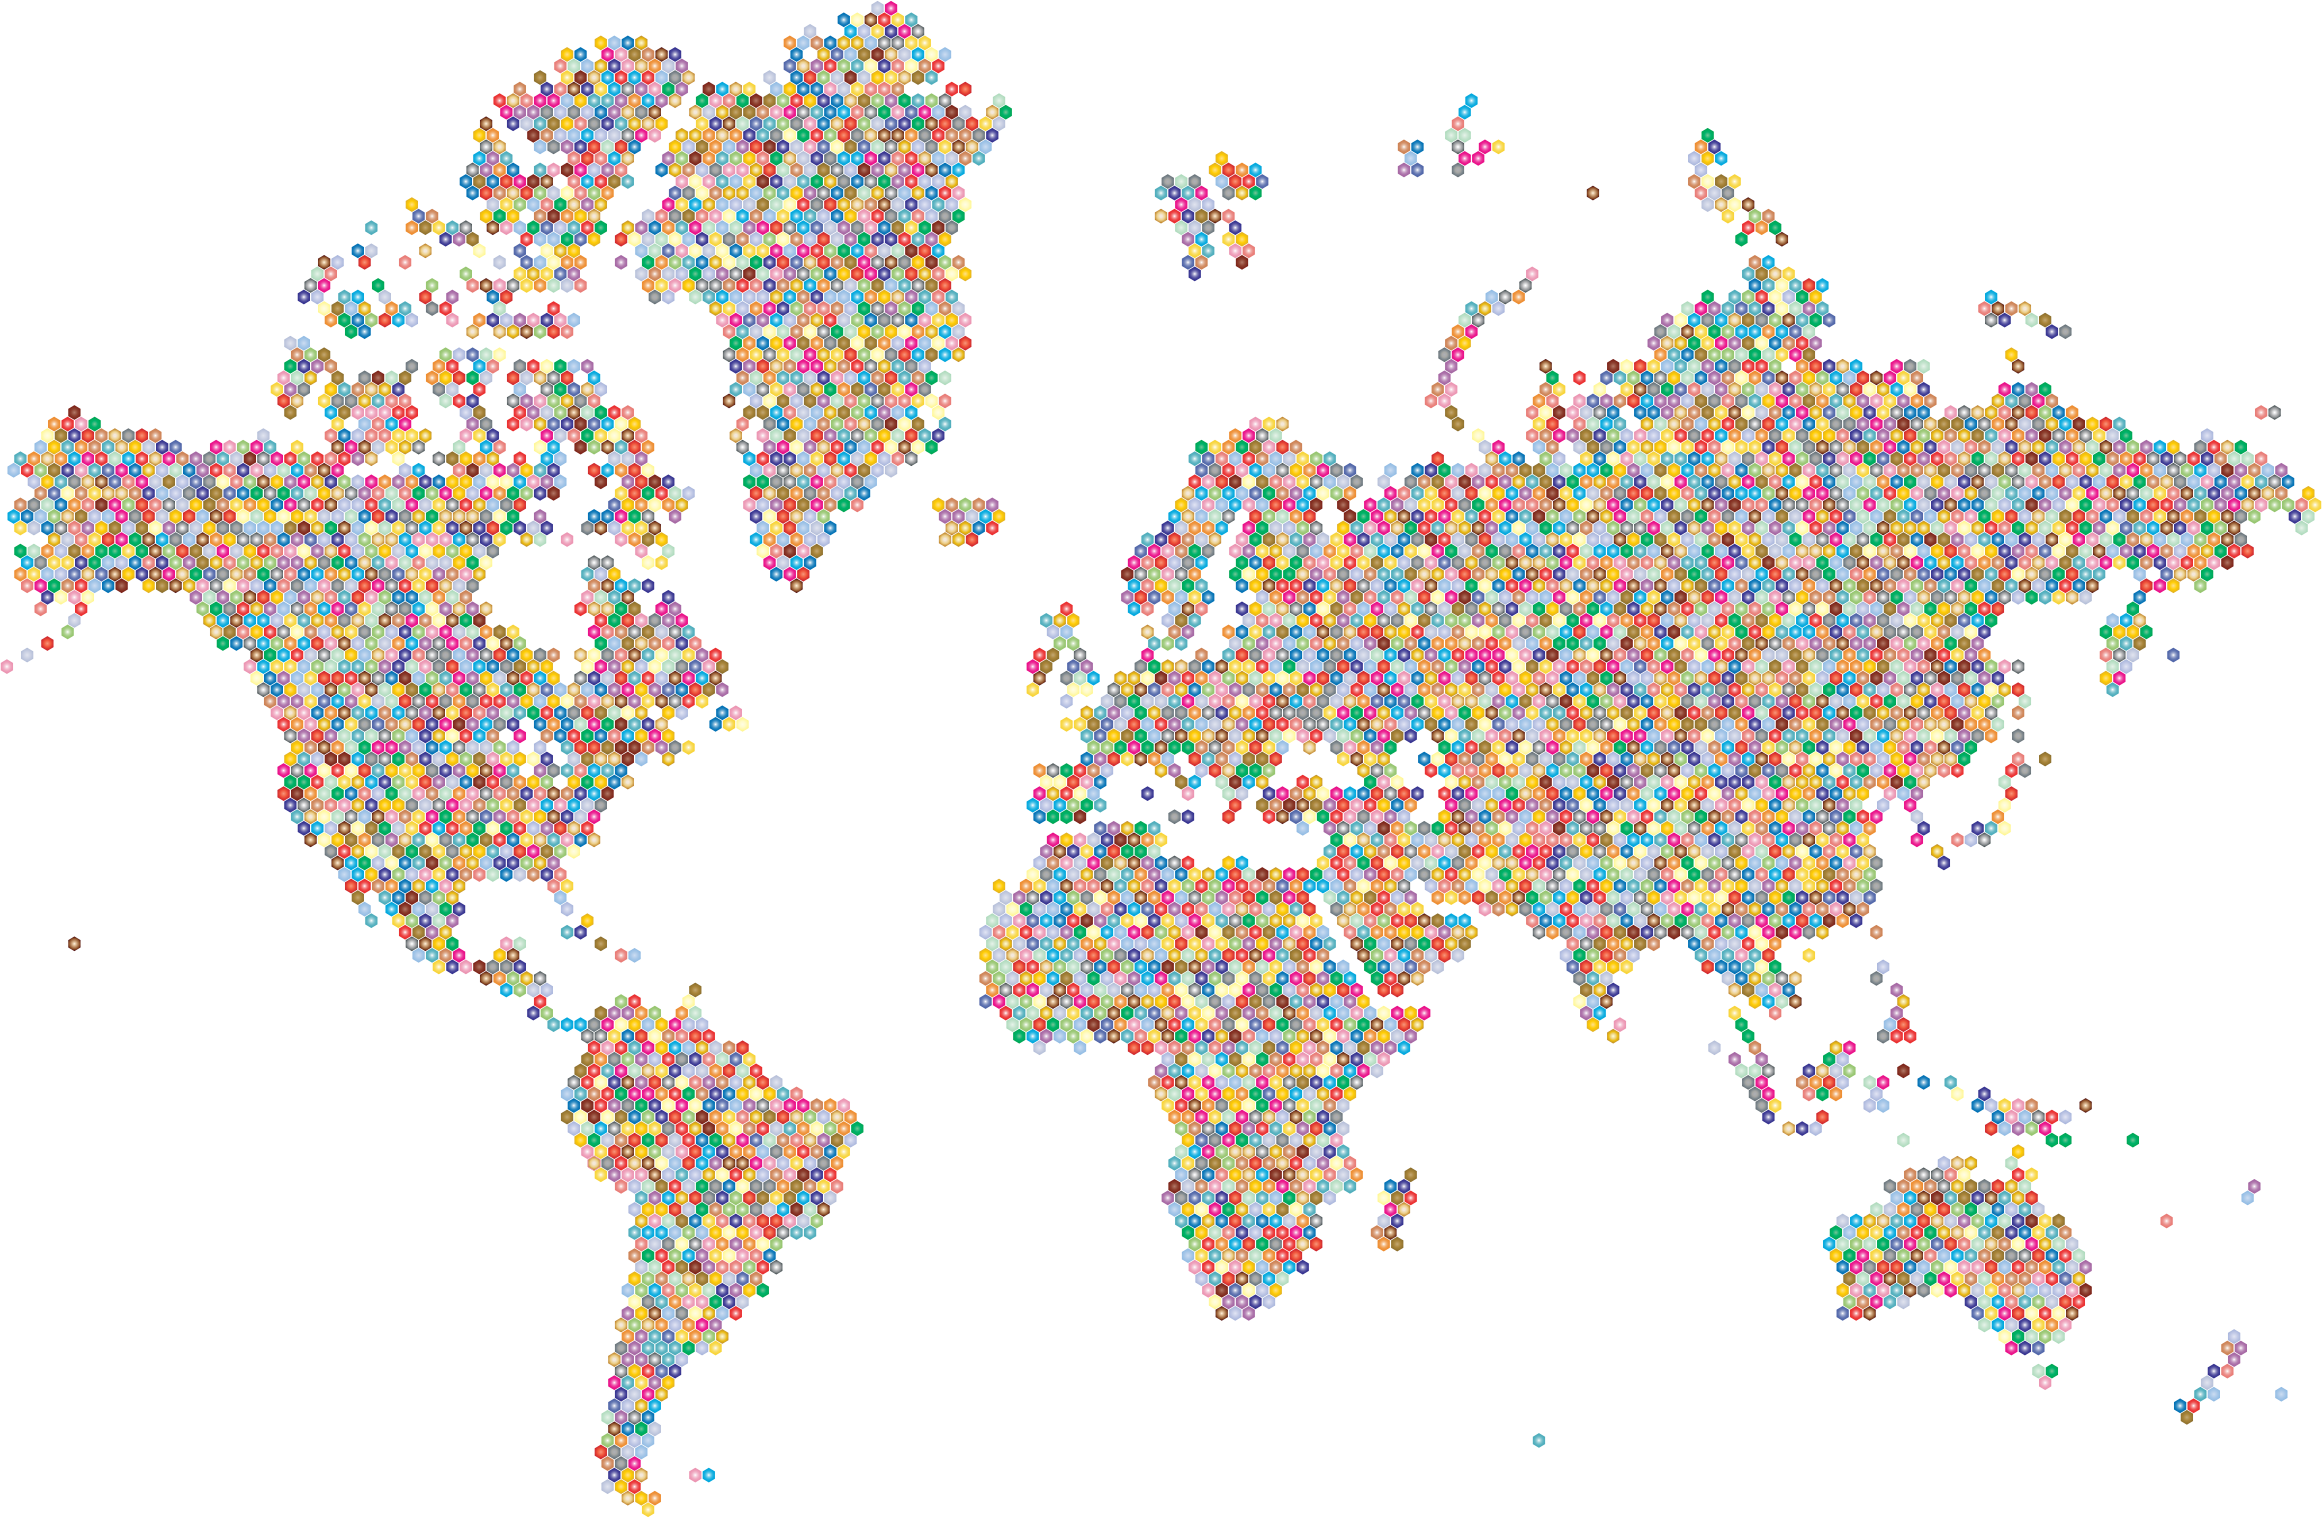 Background map clipart transparent download HD Maps Clipart Clipart Transparent Background - Colorful World Map ... transparent download